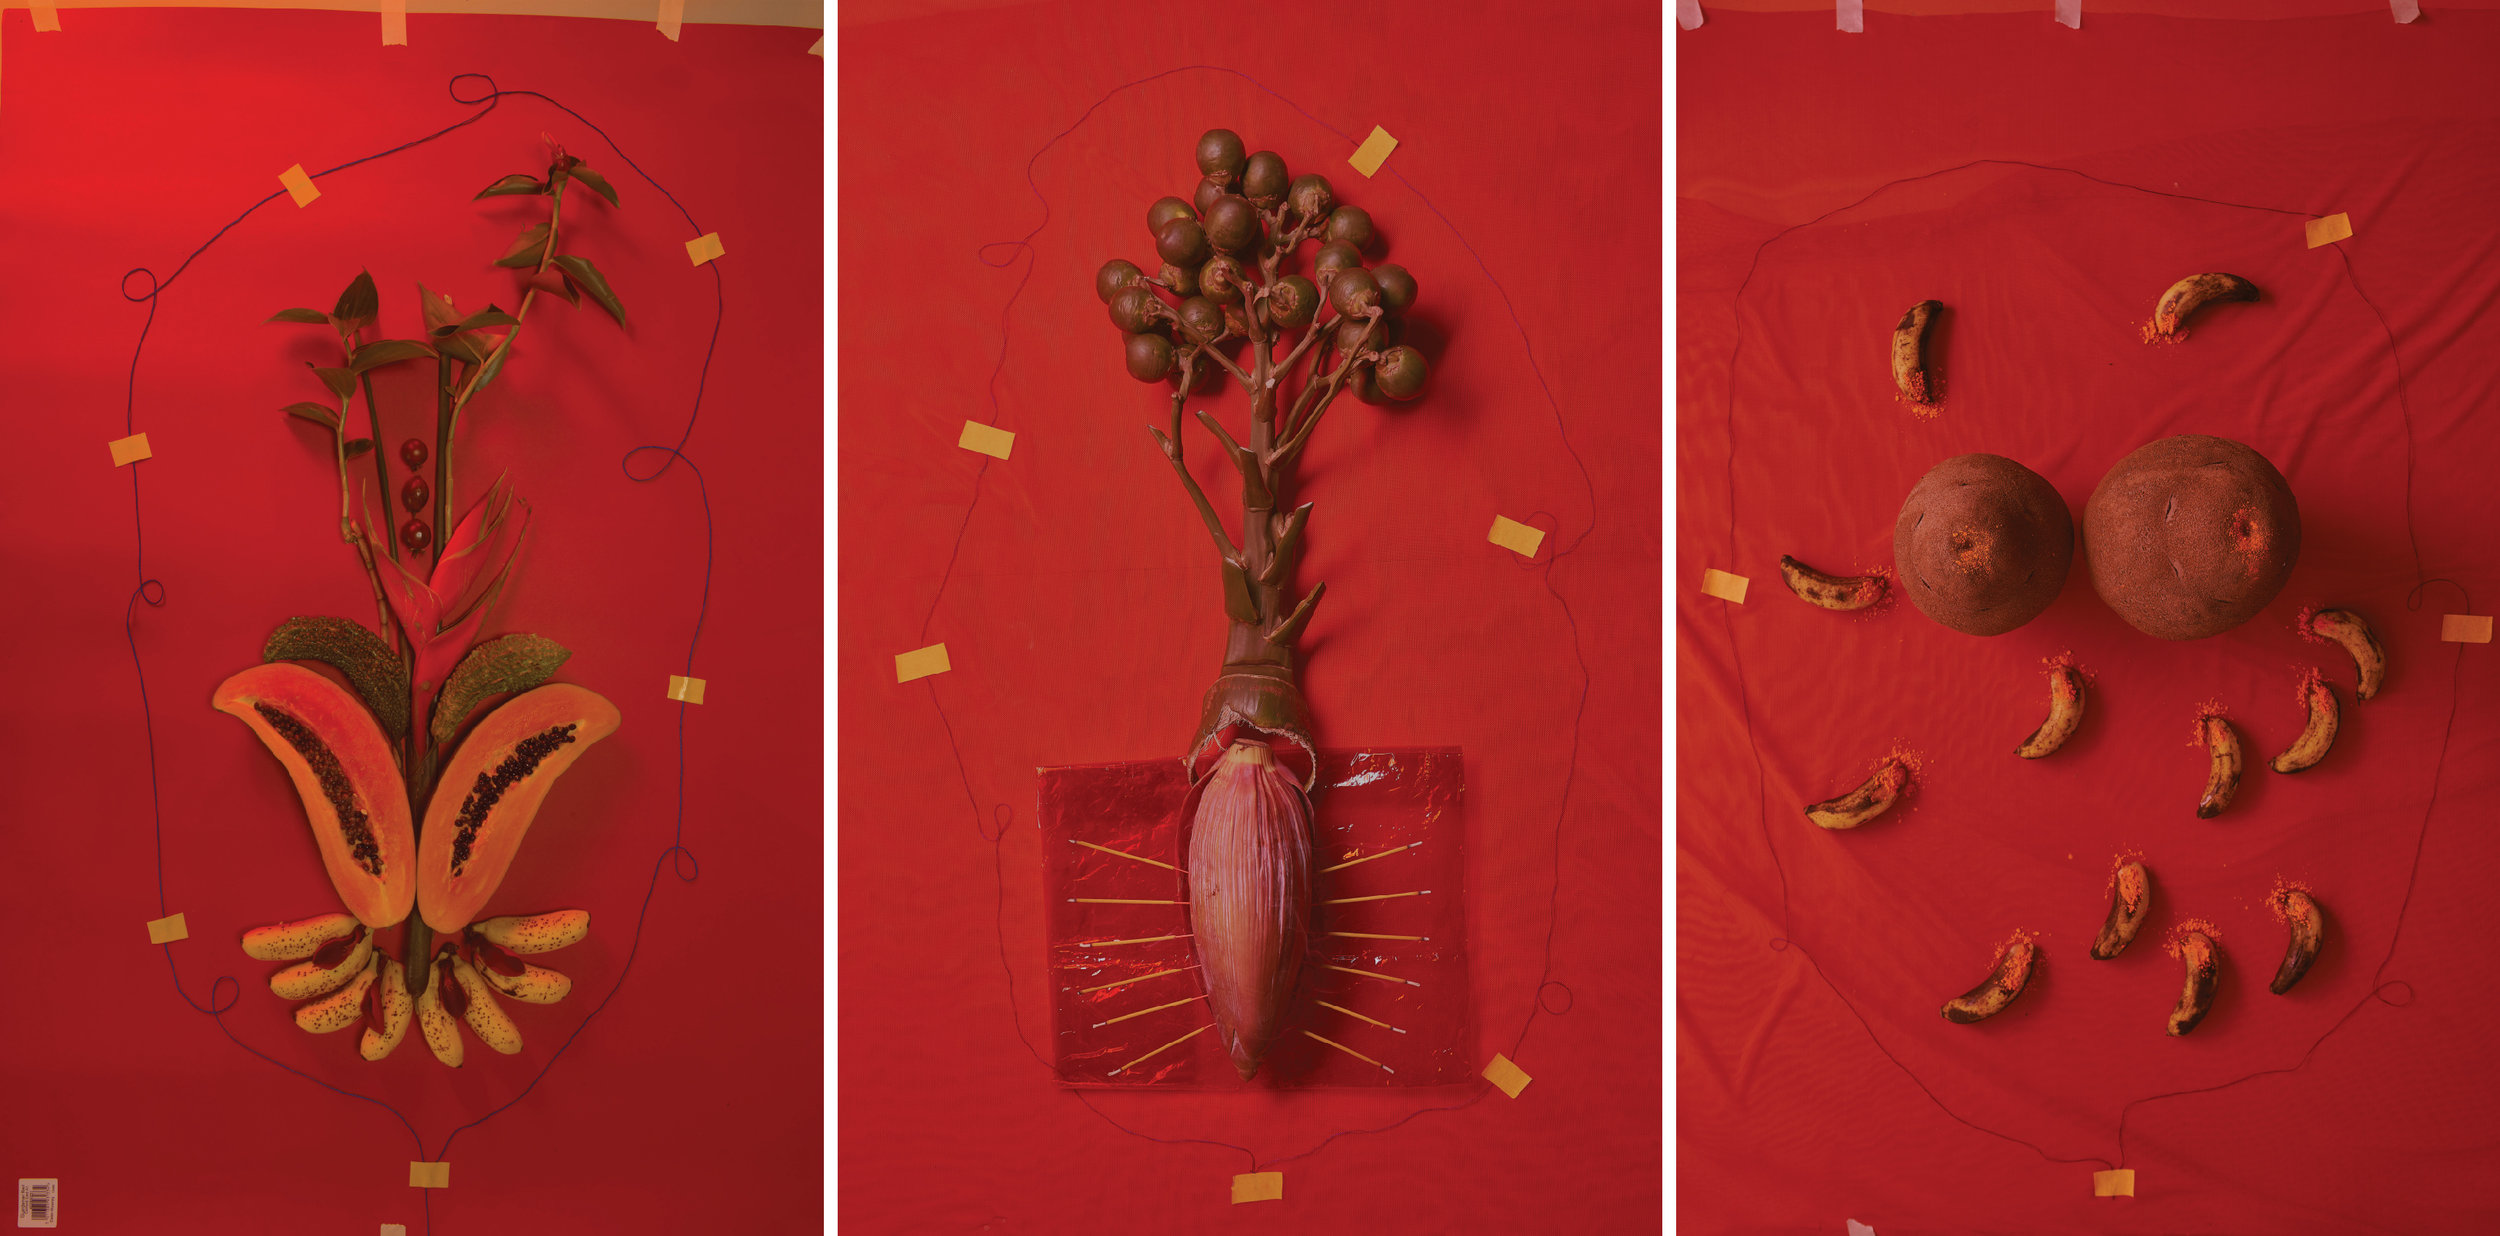 Võ Thuỷ Tiên, 'Worship', 2017-18, triptych, inkjet print on paper, edition of 3 + 2 artist's proofs. Image courtesy of The Factory.